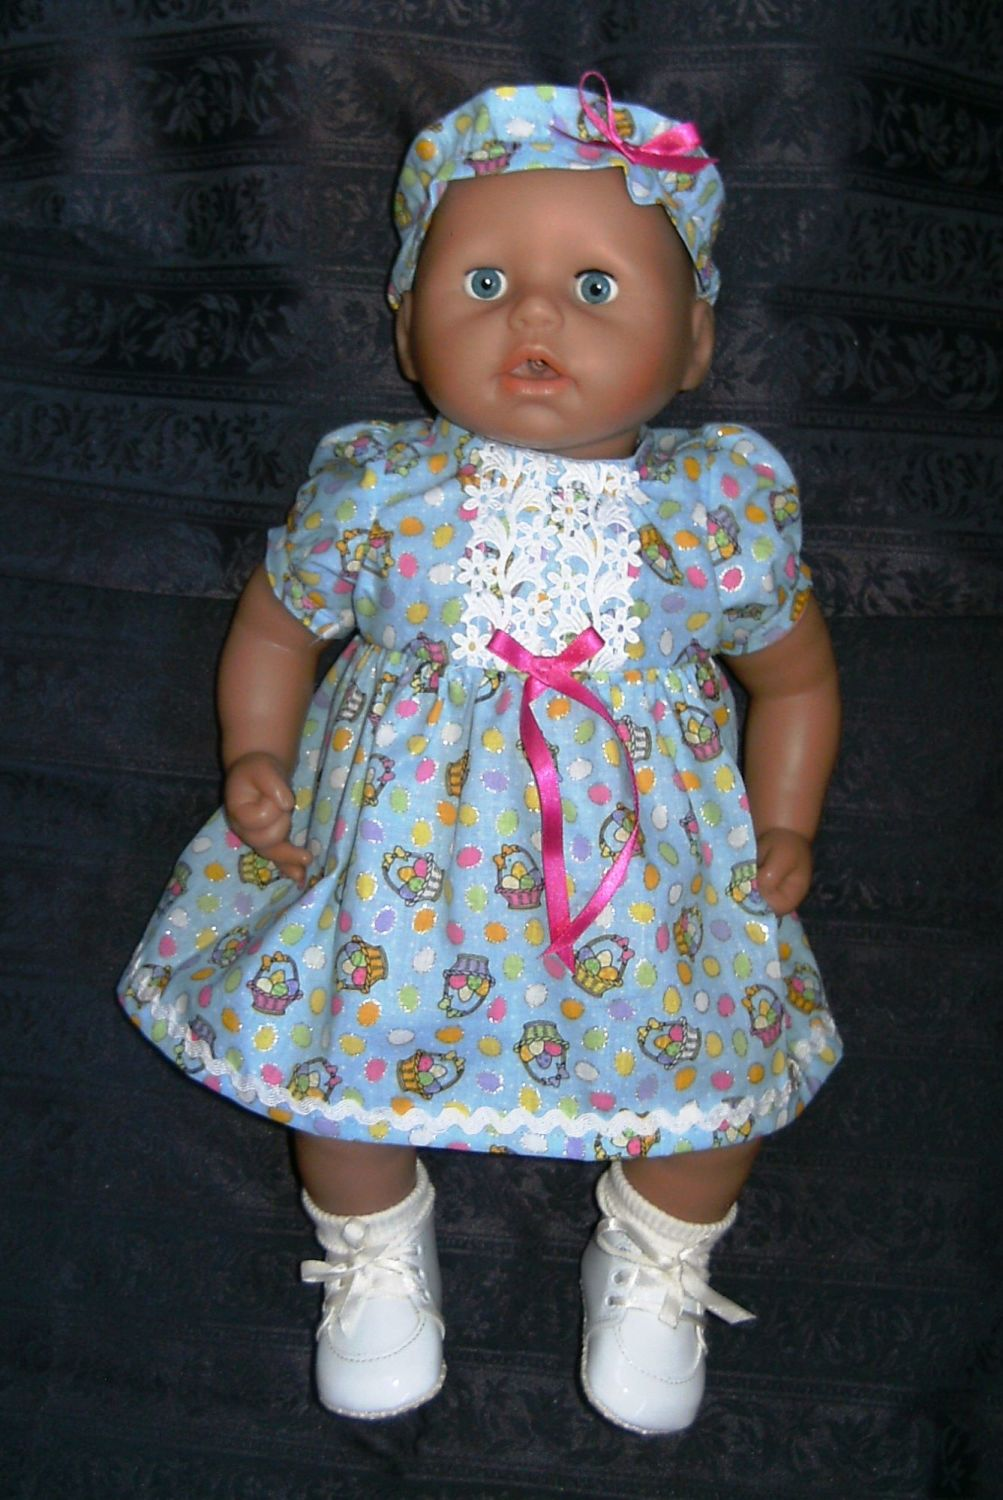 D0ll'd dress to fit a 18 inch high Annabell doll